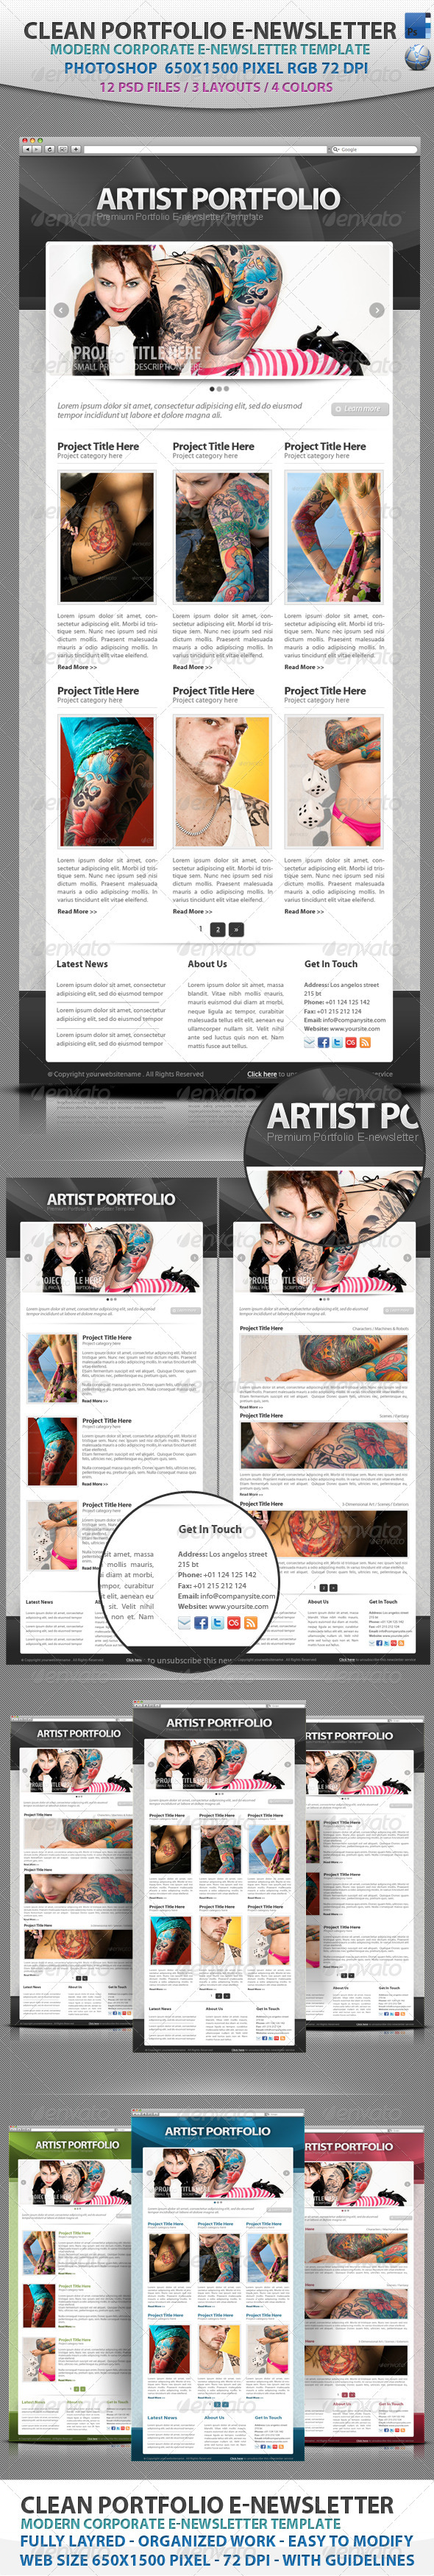 Graphic River Clean Portfolio E-newsletter Template Web Elements -  E-newsletters 1970084